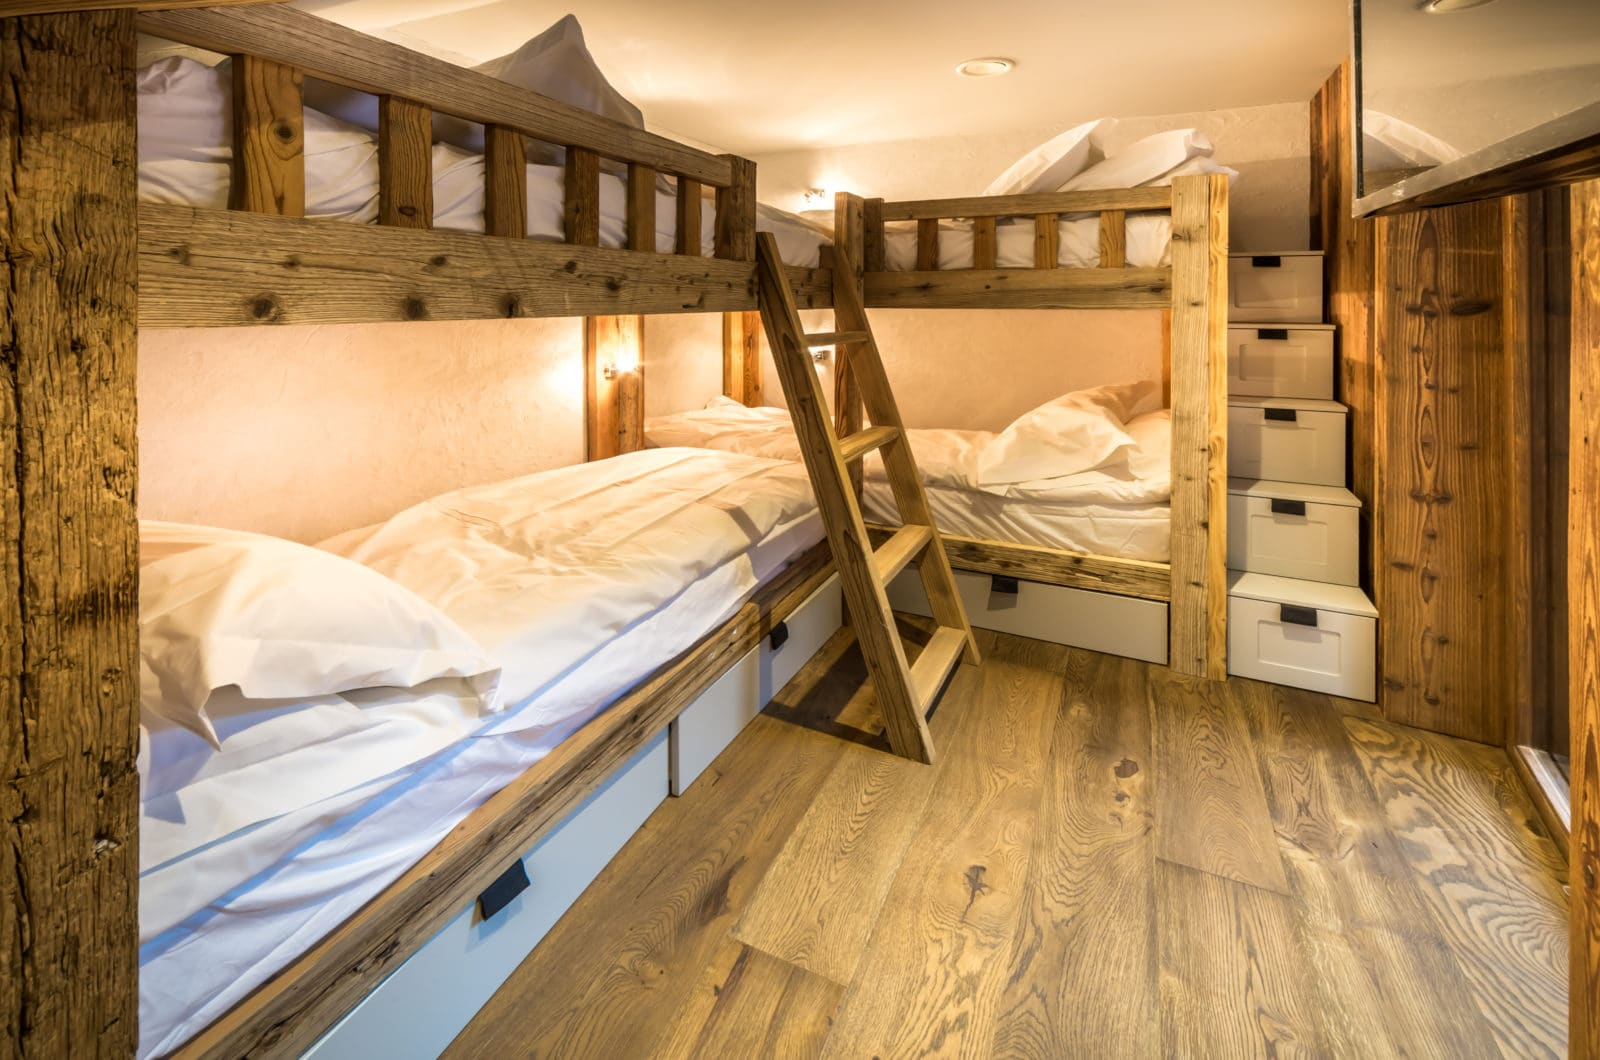 Chalet Kapa Bunk Room